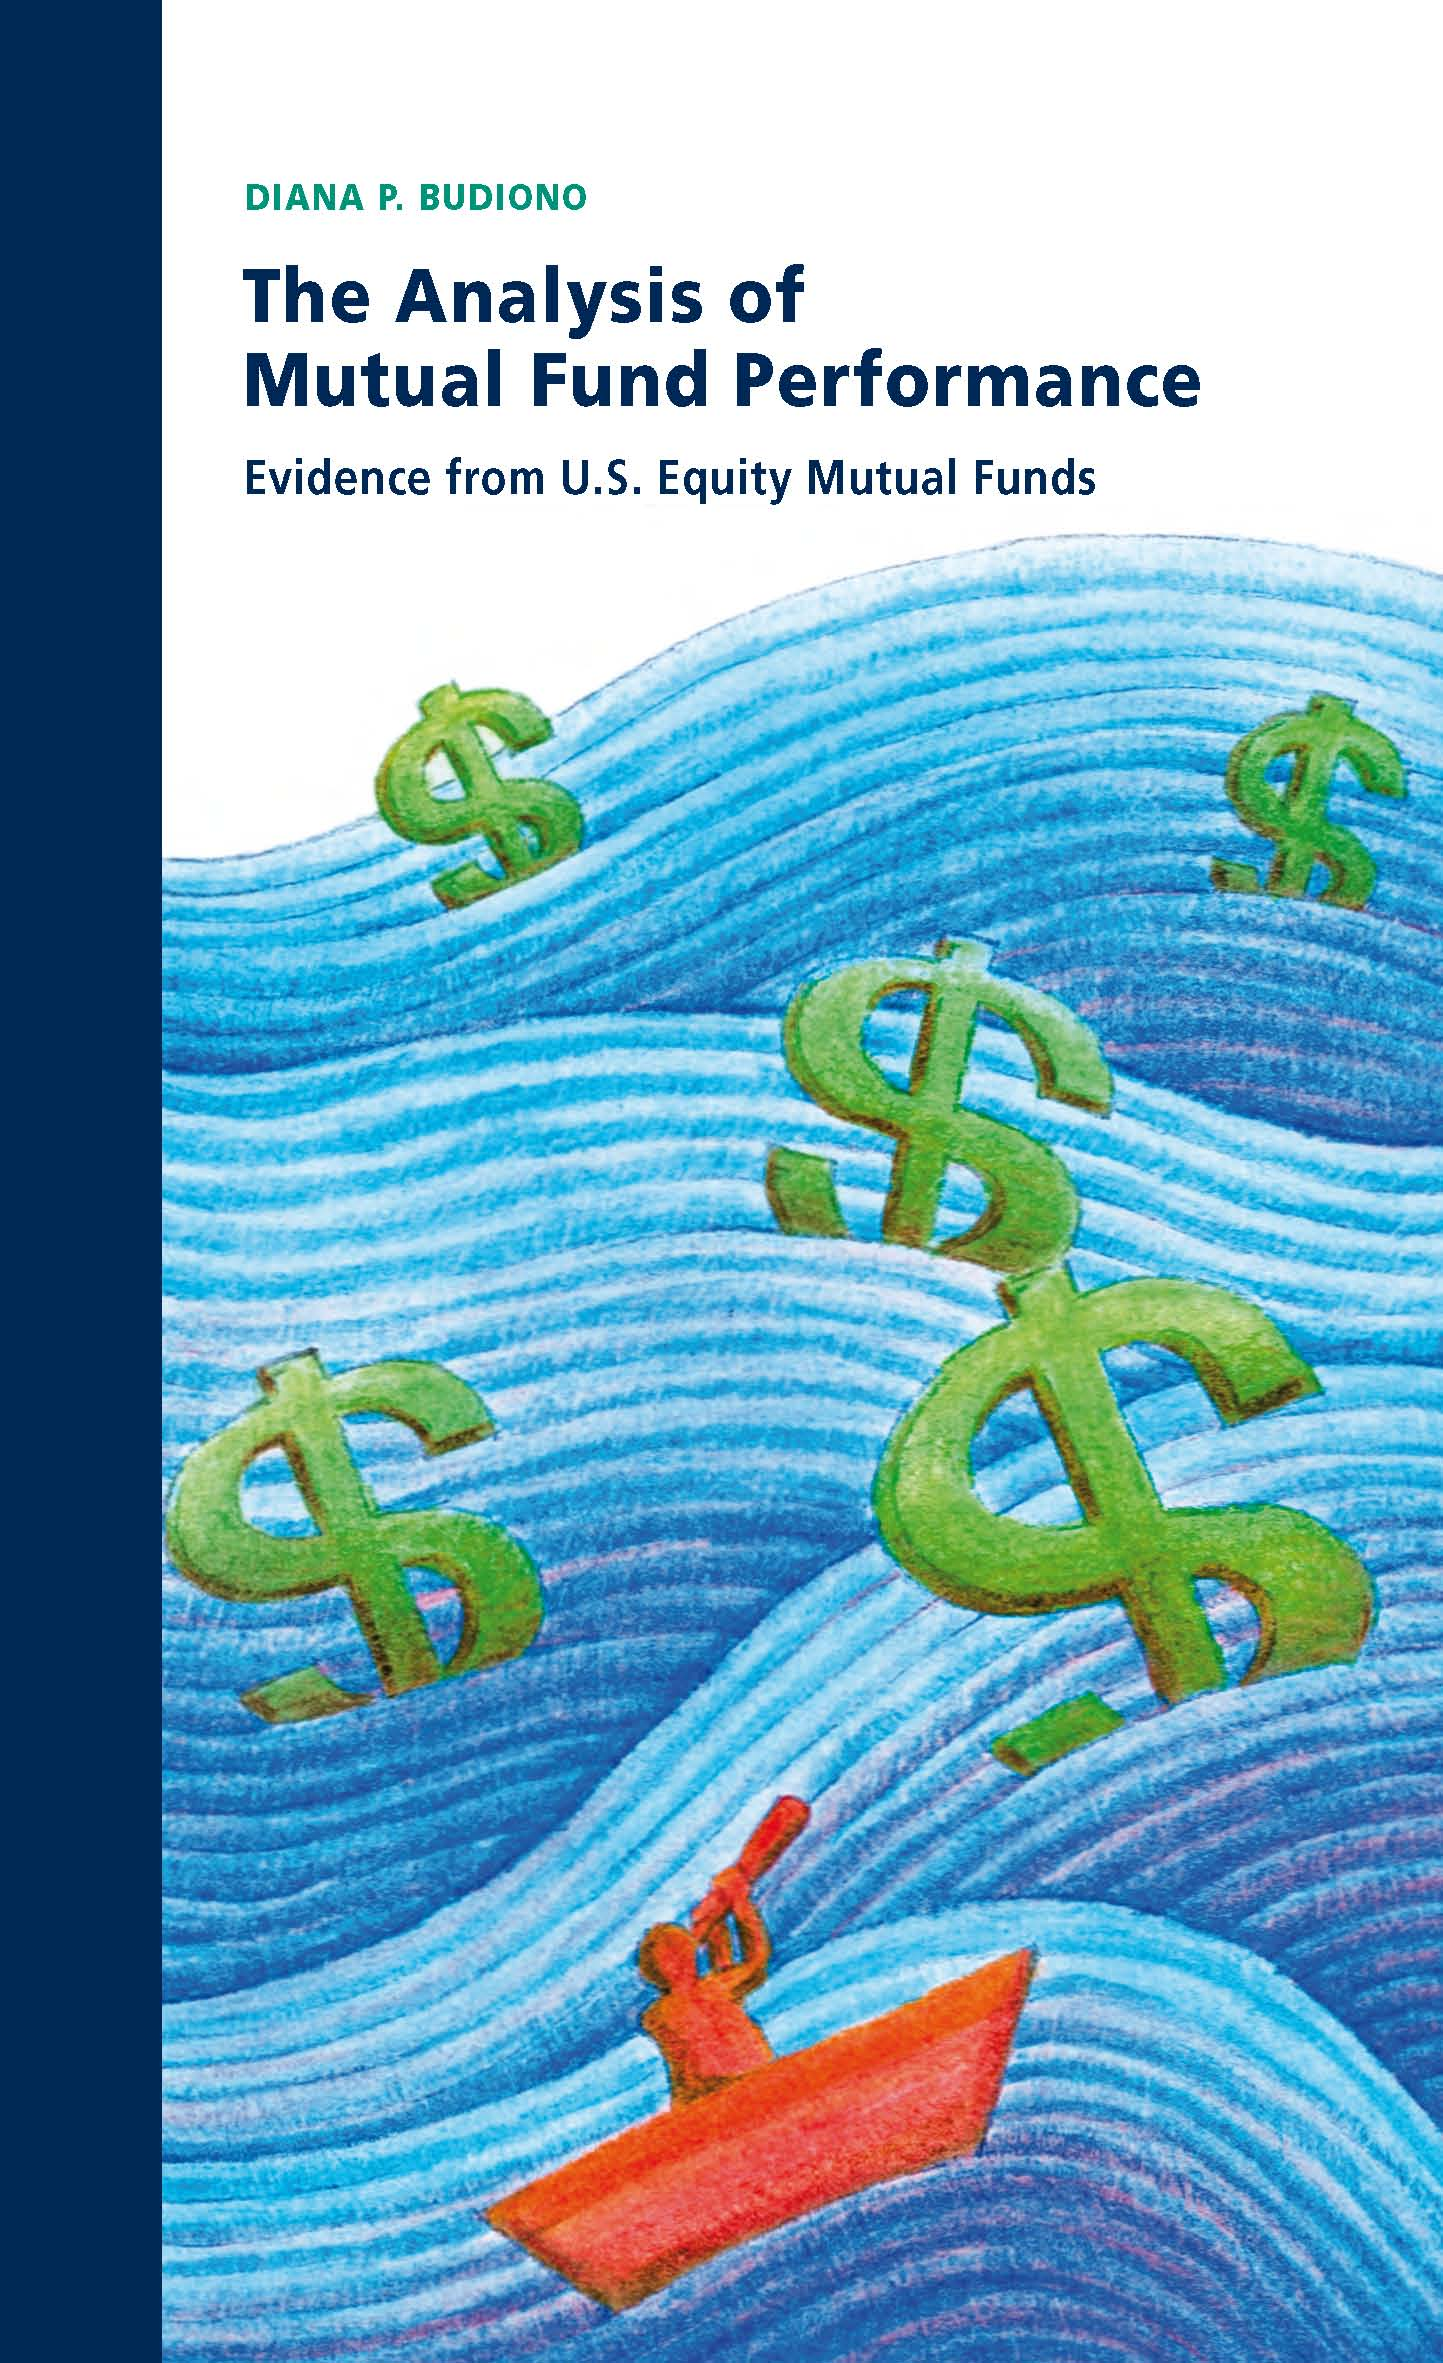 The Analysis of Mutual Fund Performance: Evidence from U.S. Equity Mutual Funds